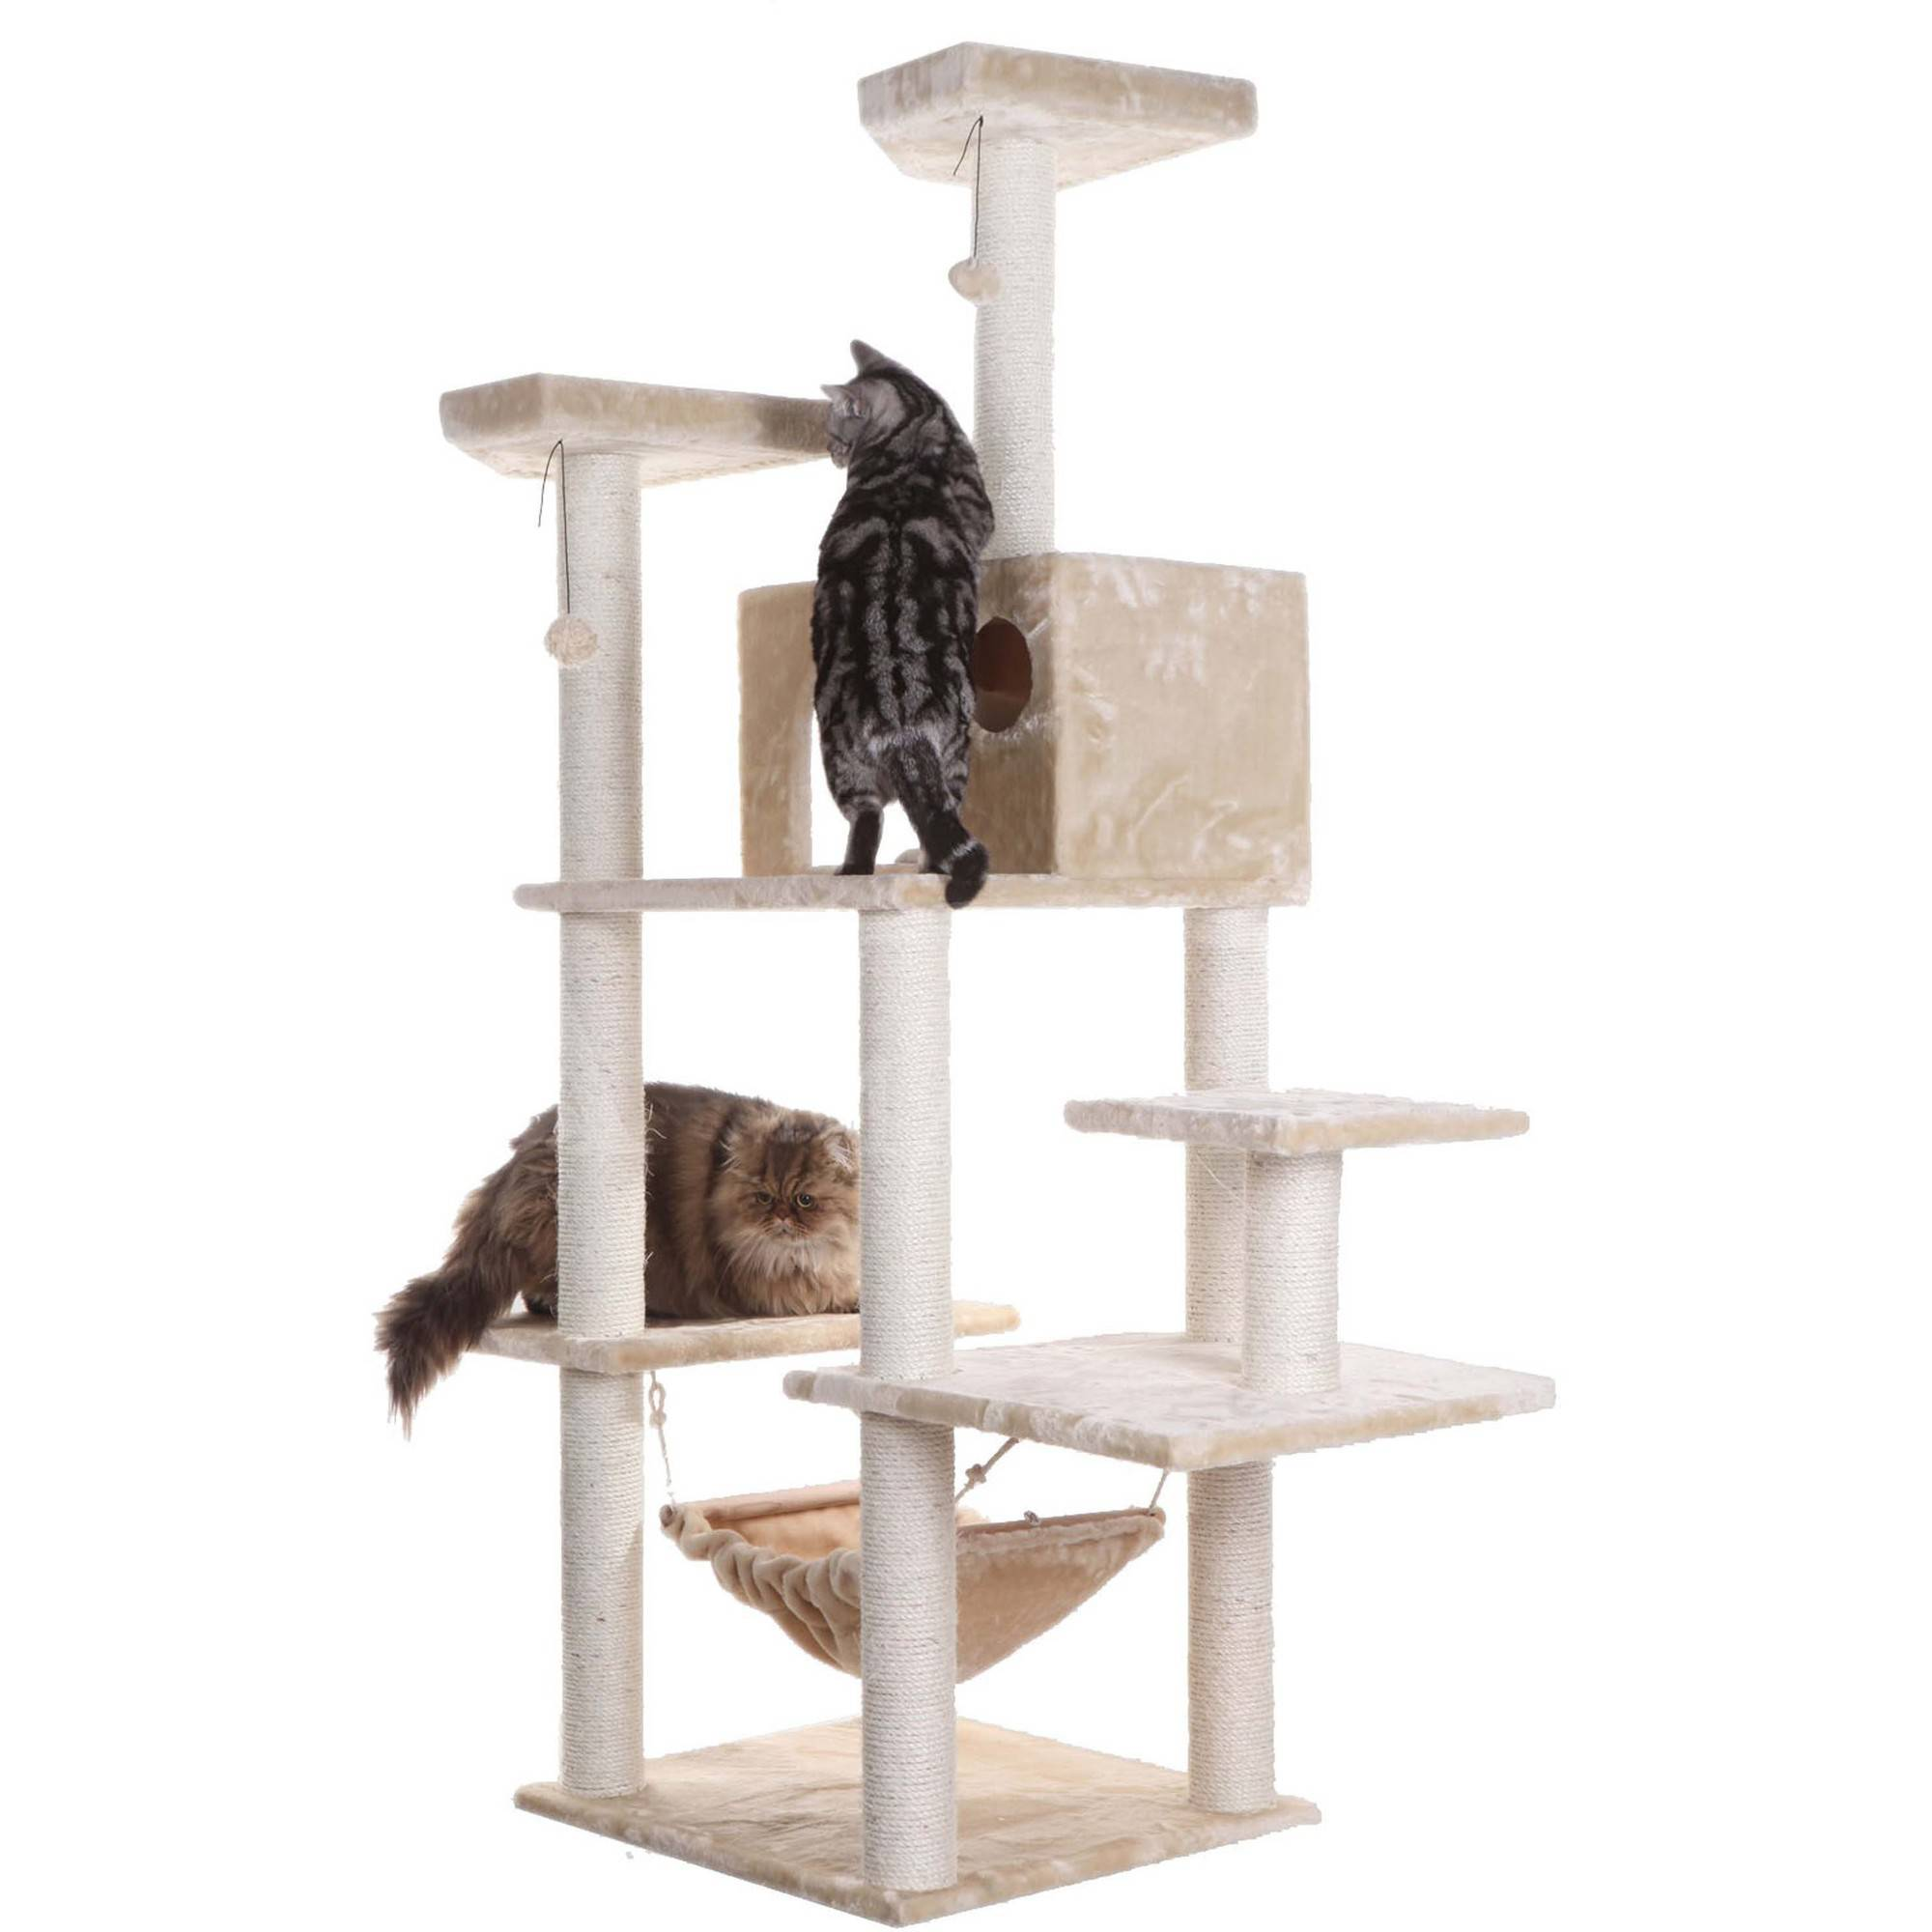 Armarkat Classic Cat Tree A7202 72 Inch, Beige by Aeromark Intl Inc